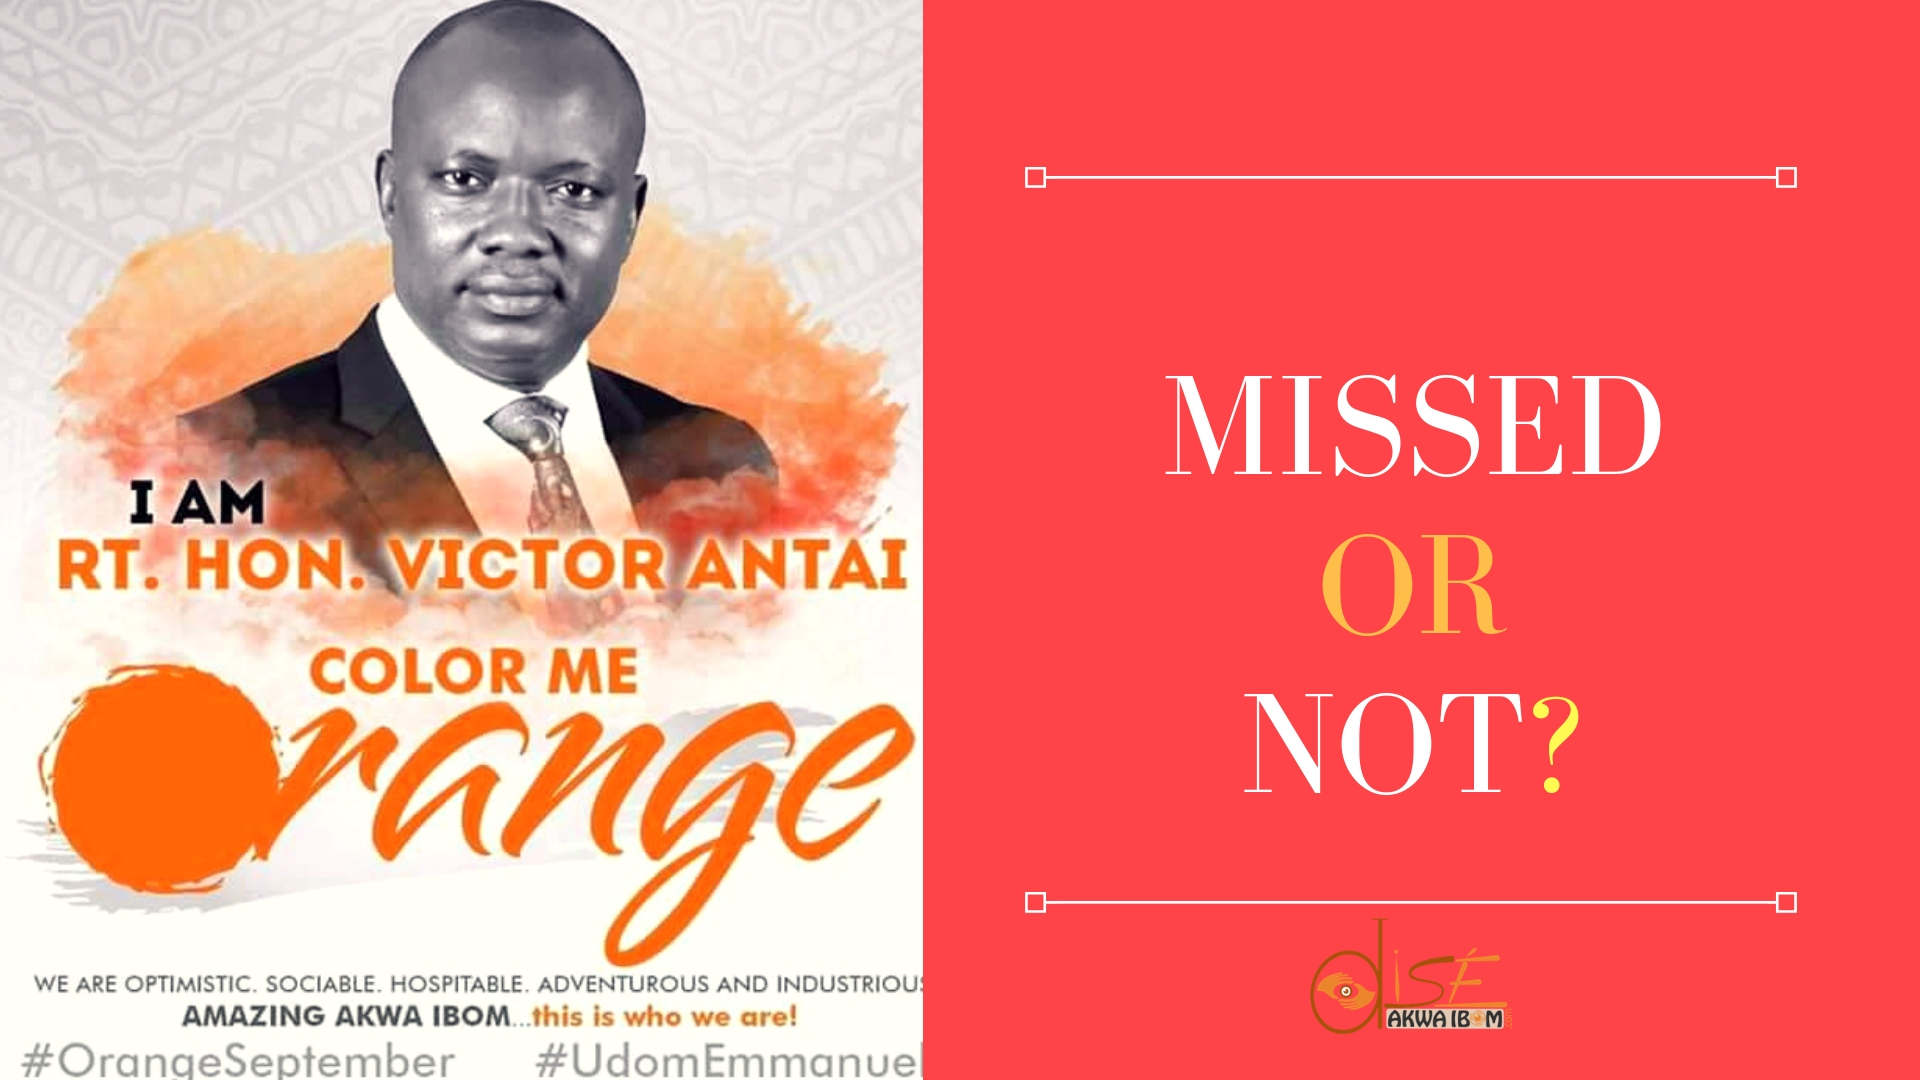 Hon-Victor-Antai-Missed-or-Not